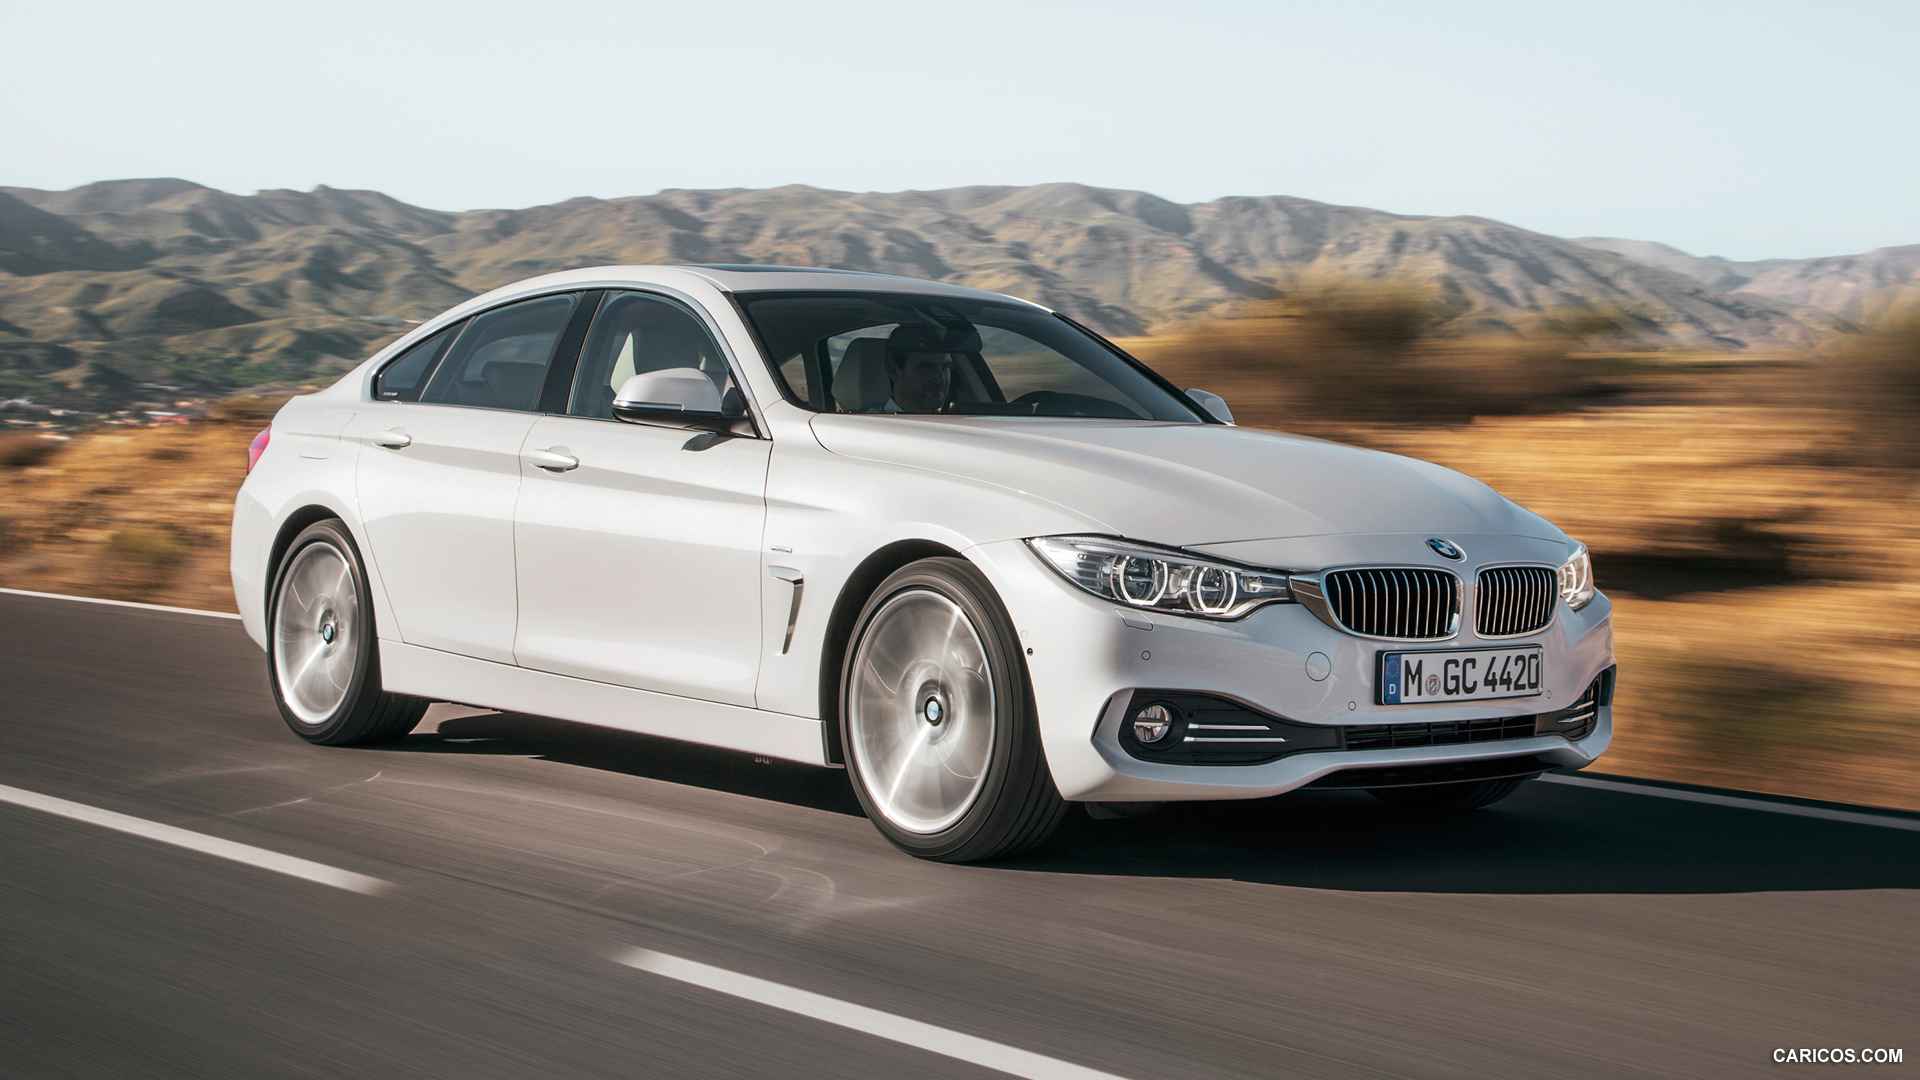 2015 Bmw 4 Series Information And Photos Zombiedrive Gran Coupe Mineral Grey 428i